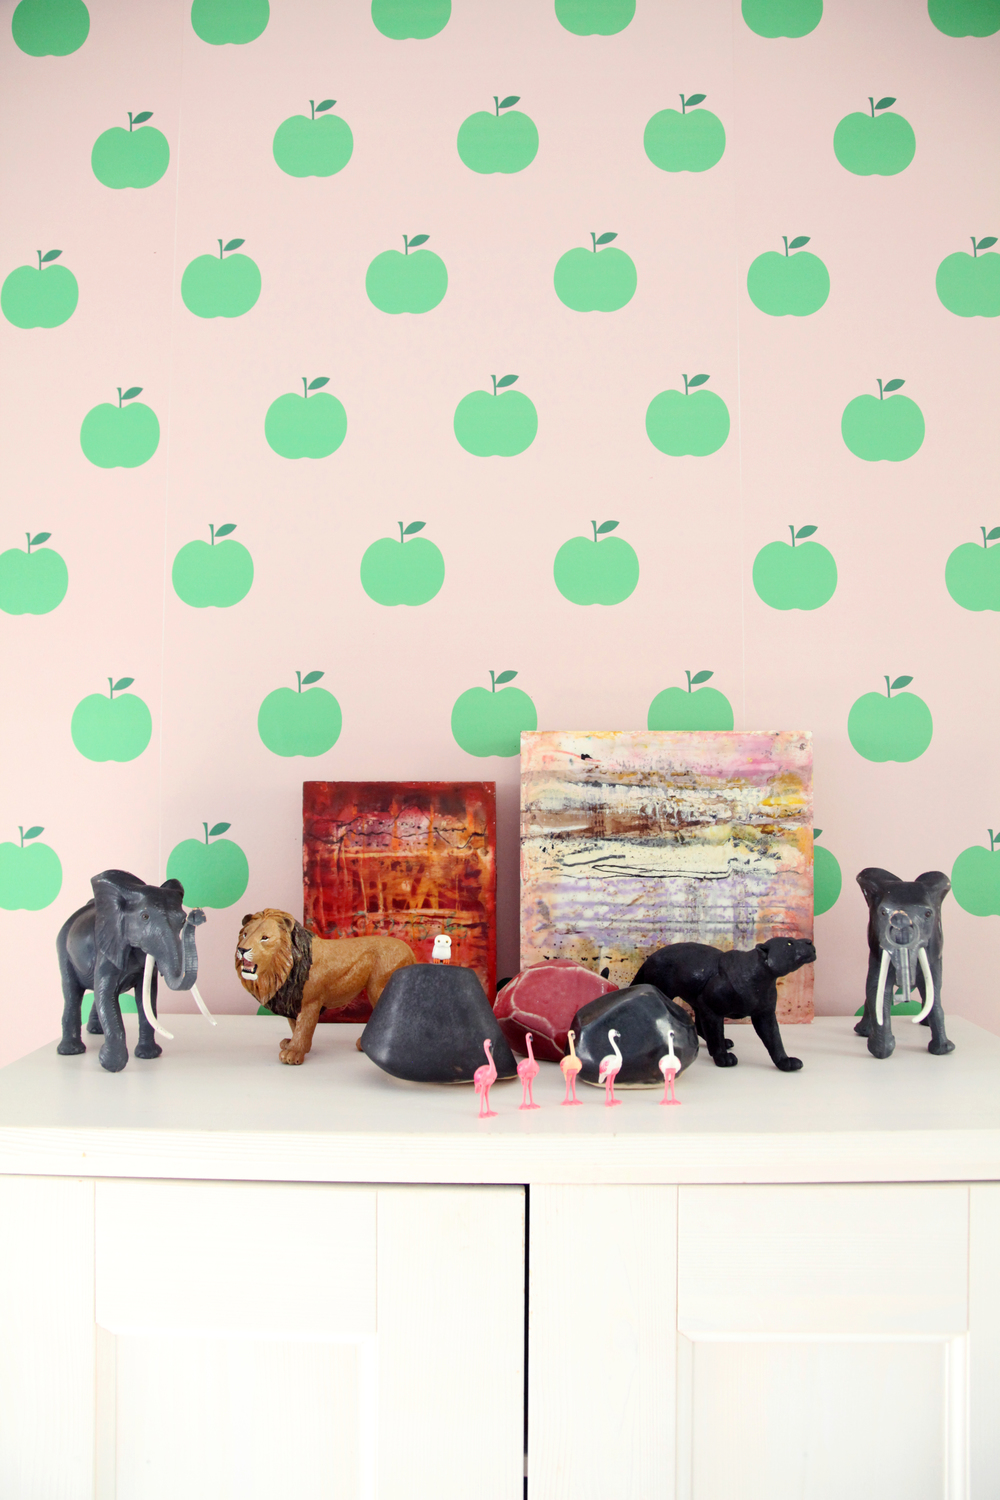 A funny little menagerie against the most darling wallpaper.